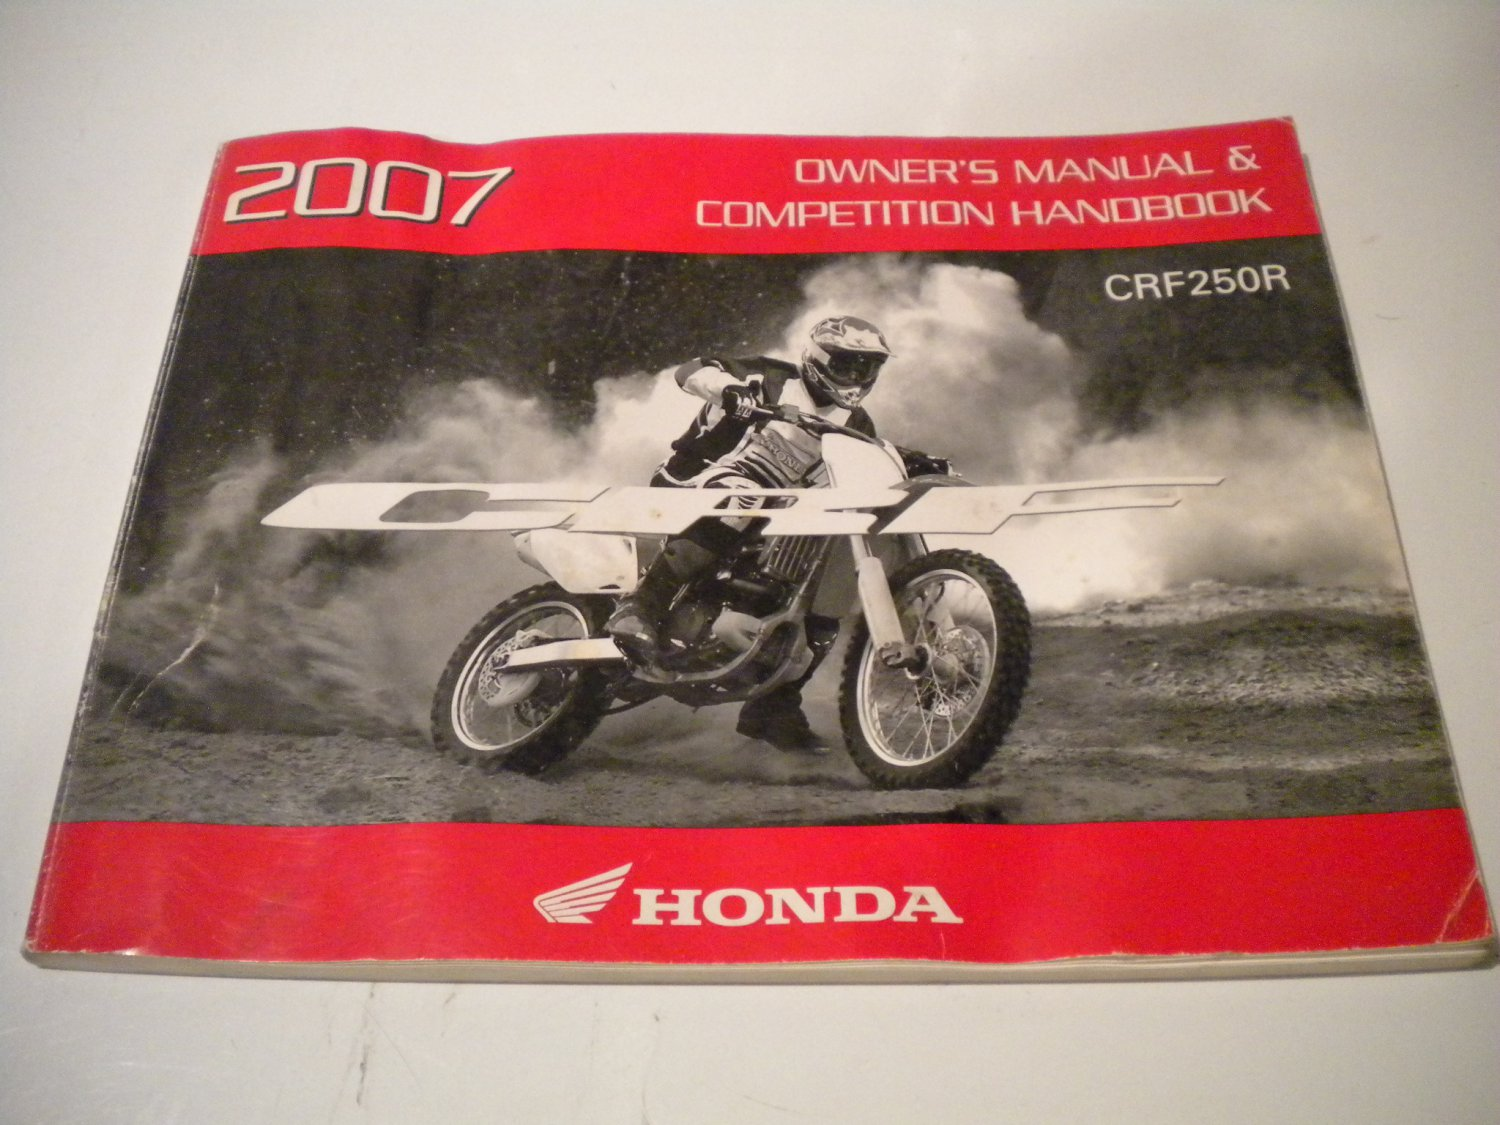 honda crf250r 2007 owners manual owner s guide crf 250 crf250 r 250r rh ecrater com 2007 honda crf250r repair manual 2007 Crf250r Horsepower